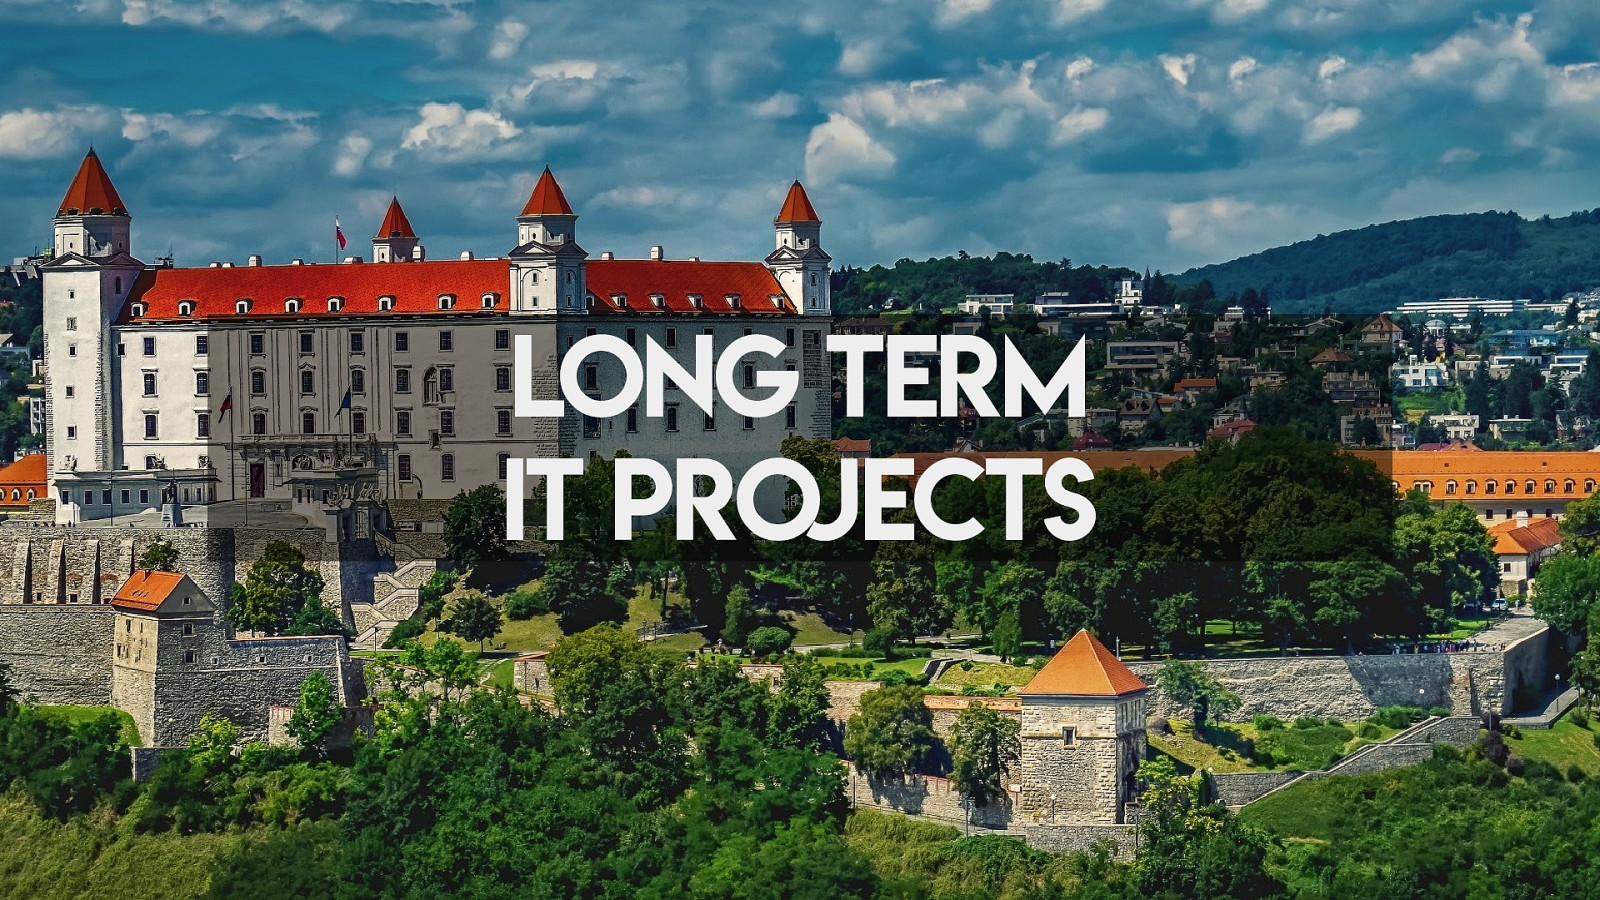 Long term IT projects